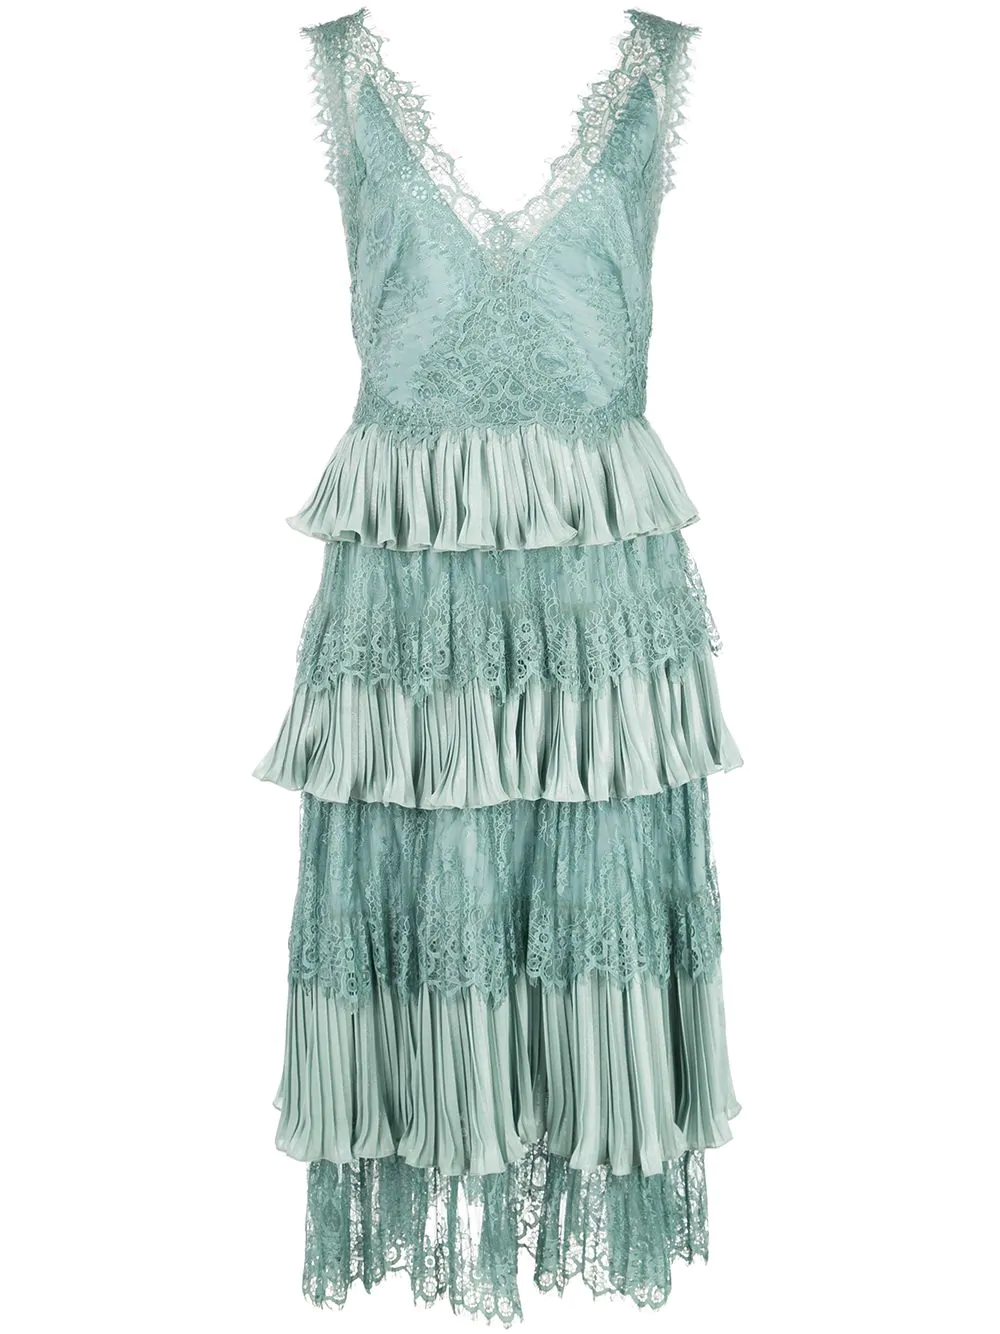 228acb30 Marchesa Notte Lace Tiered Midi Dress - Green In Teal | ModeSens